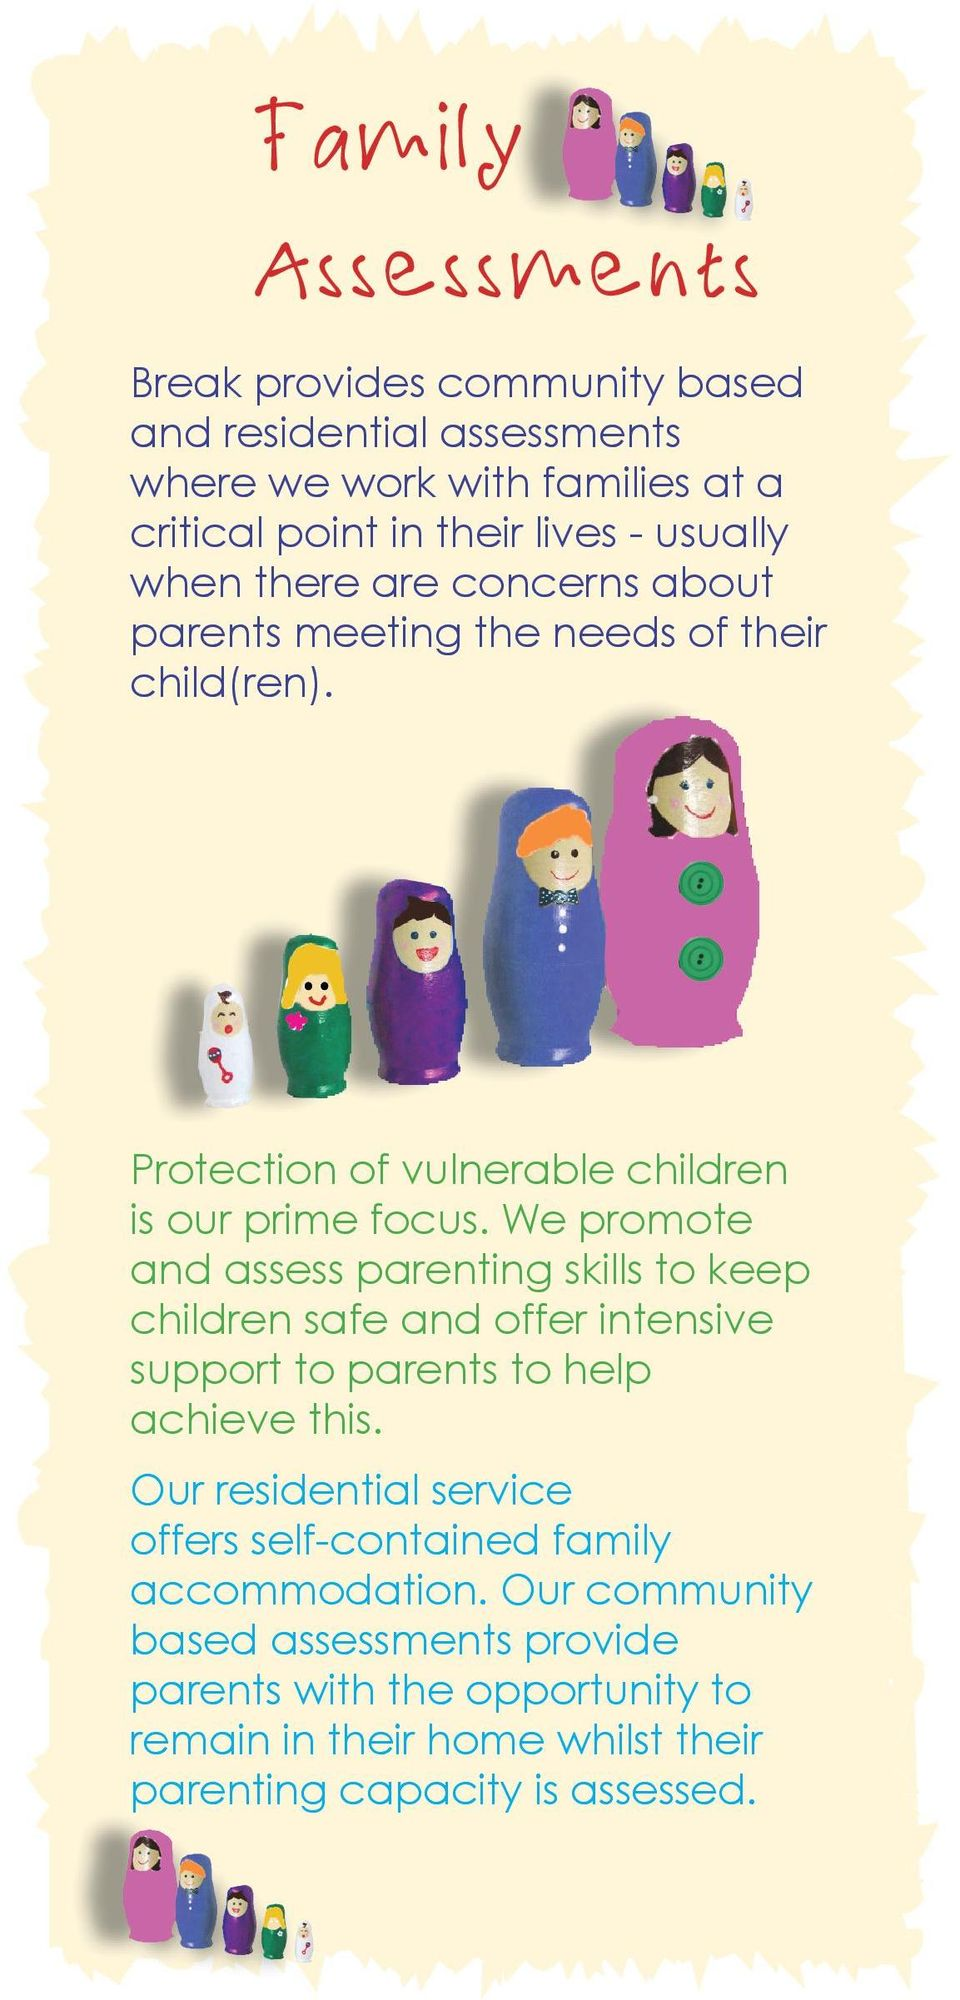 We promote and assess parenting skills to keep children safe and offer intensive support to parents to help achieve this.